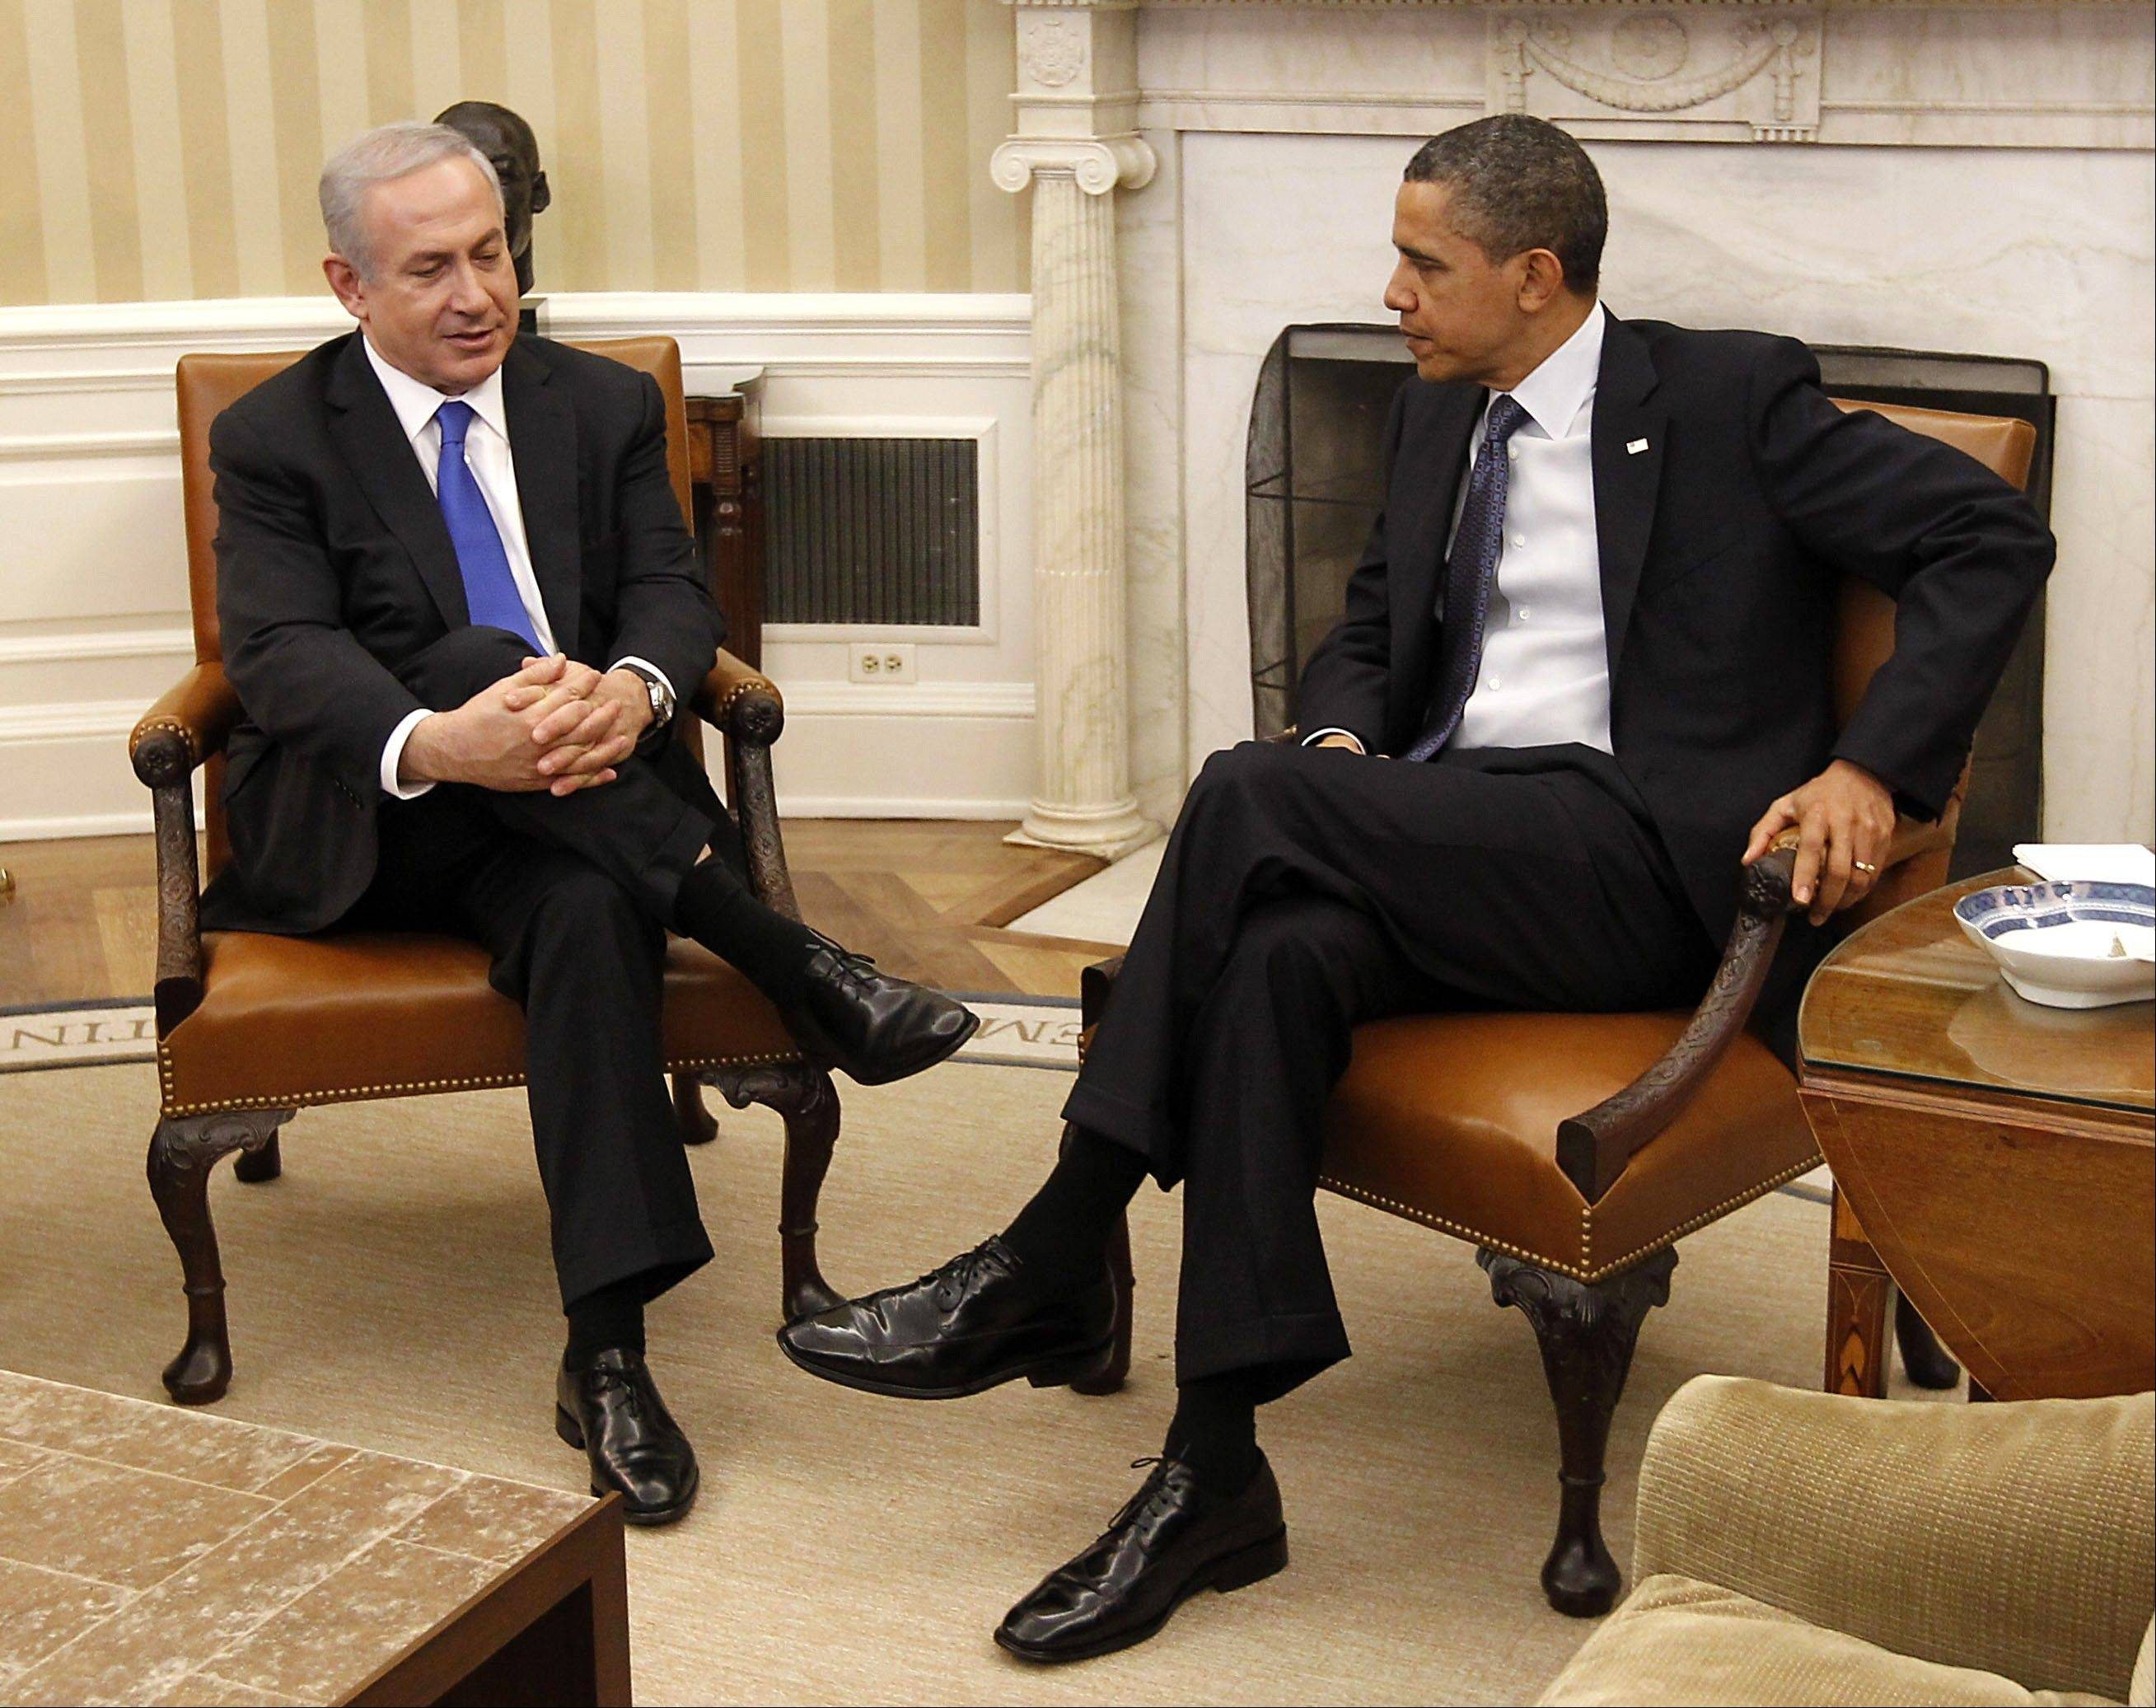 Associated Press/March 5, 2012 President Barack Obama meets with Israeli Prime Minister Benjamin Netanyahu in the Oval Office of the White House in Washington.